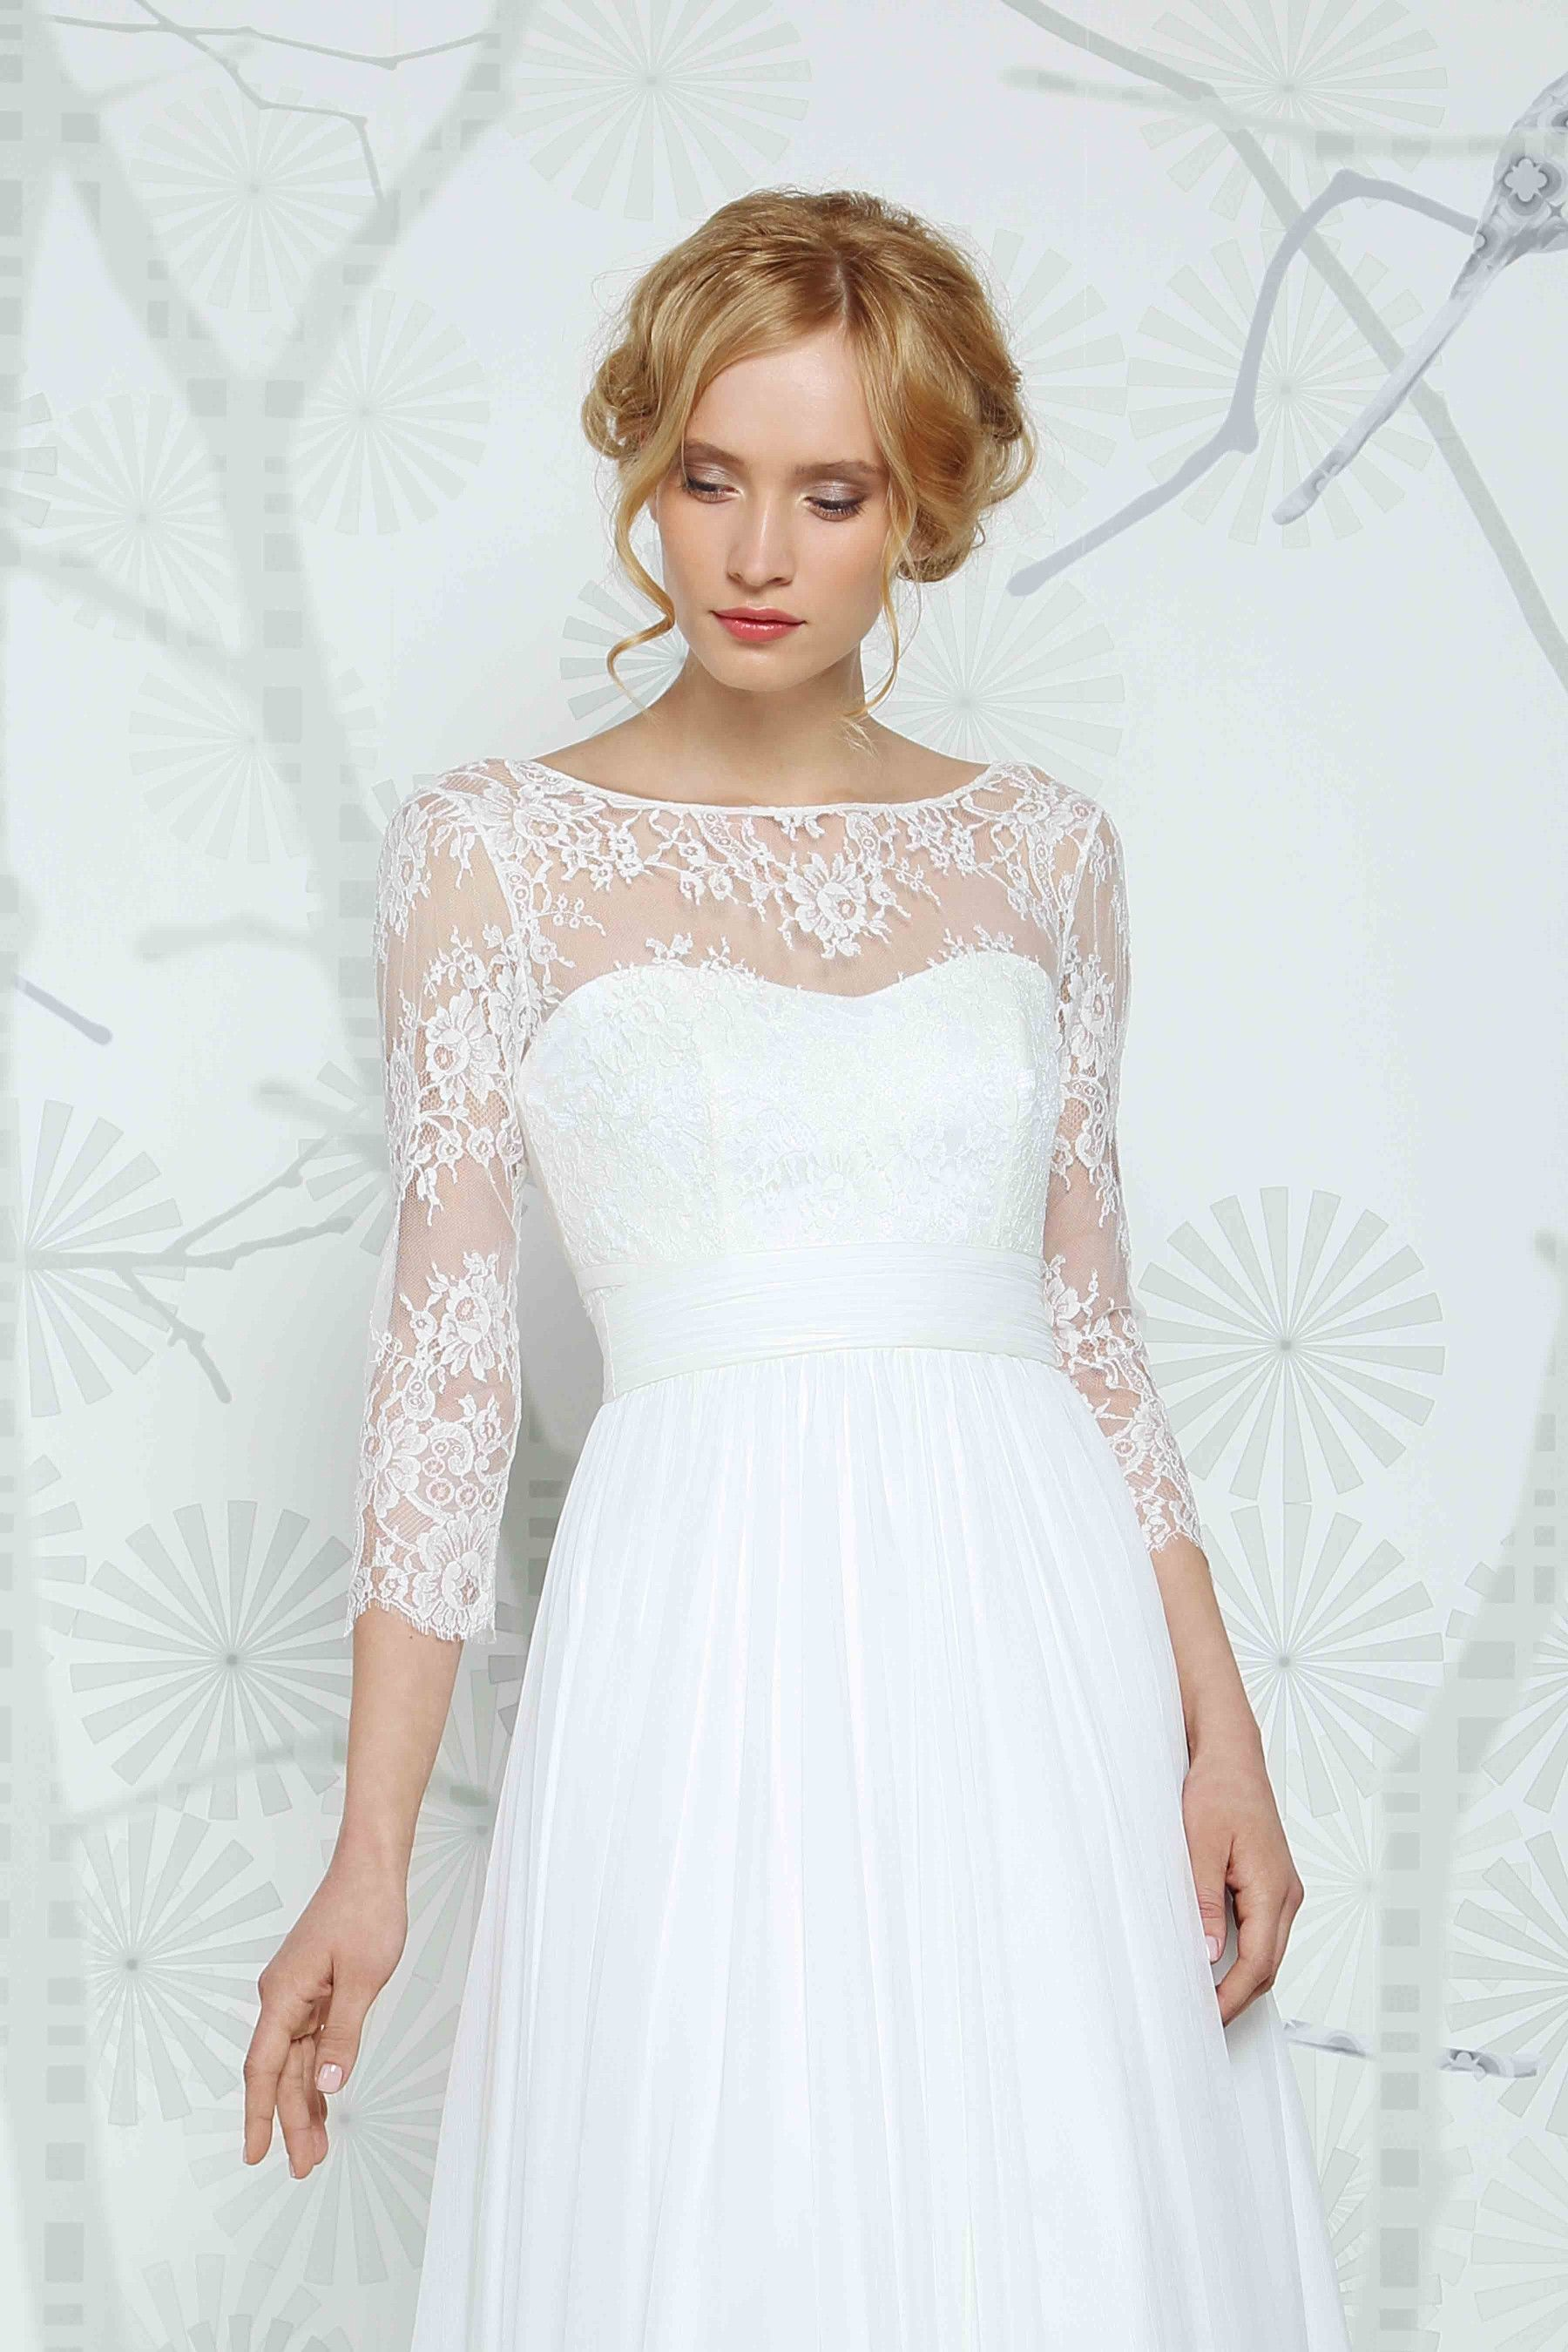 SADONI top ELEA with 3/4 sleeves in French lace. A modern twist ...